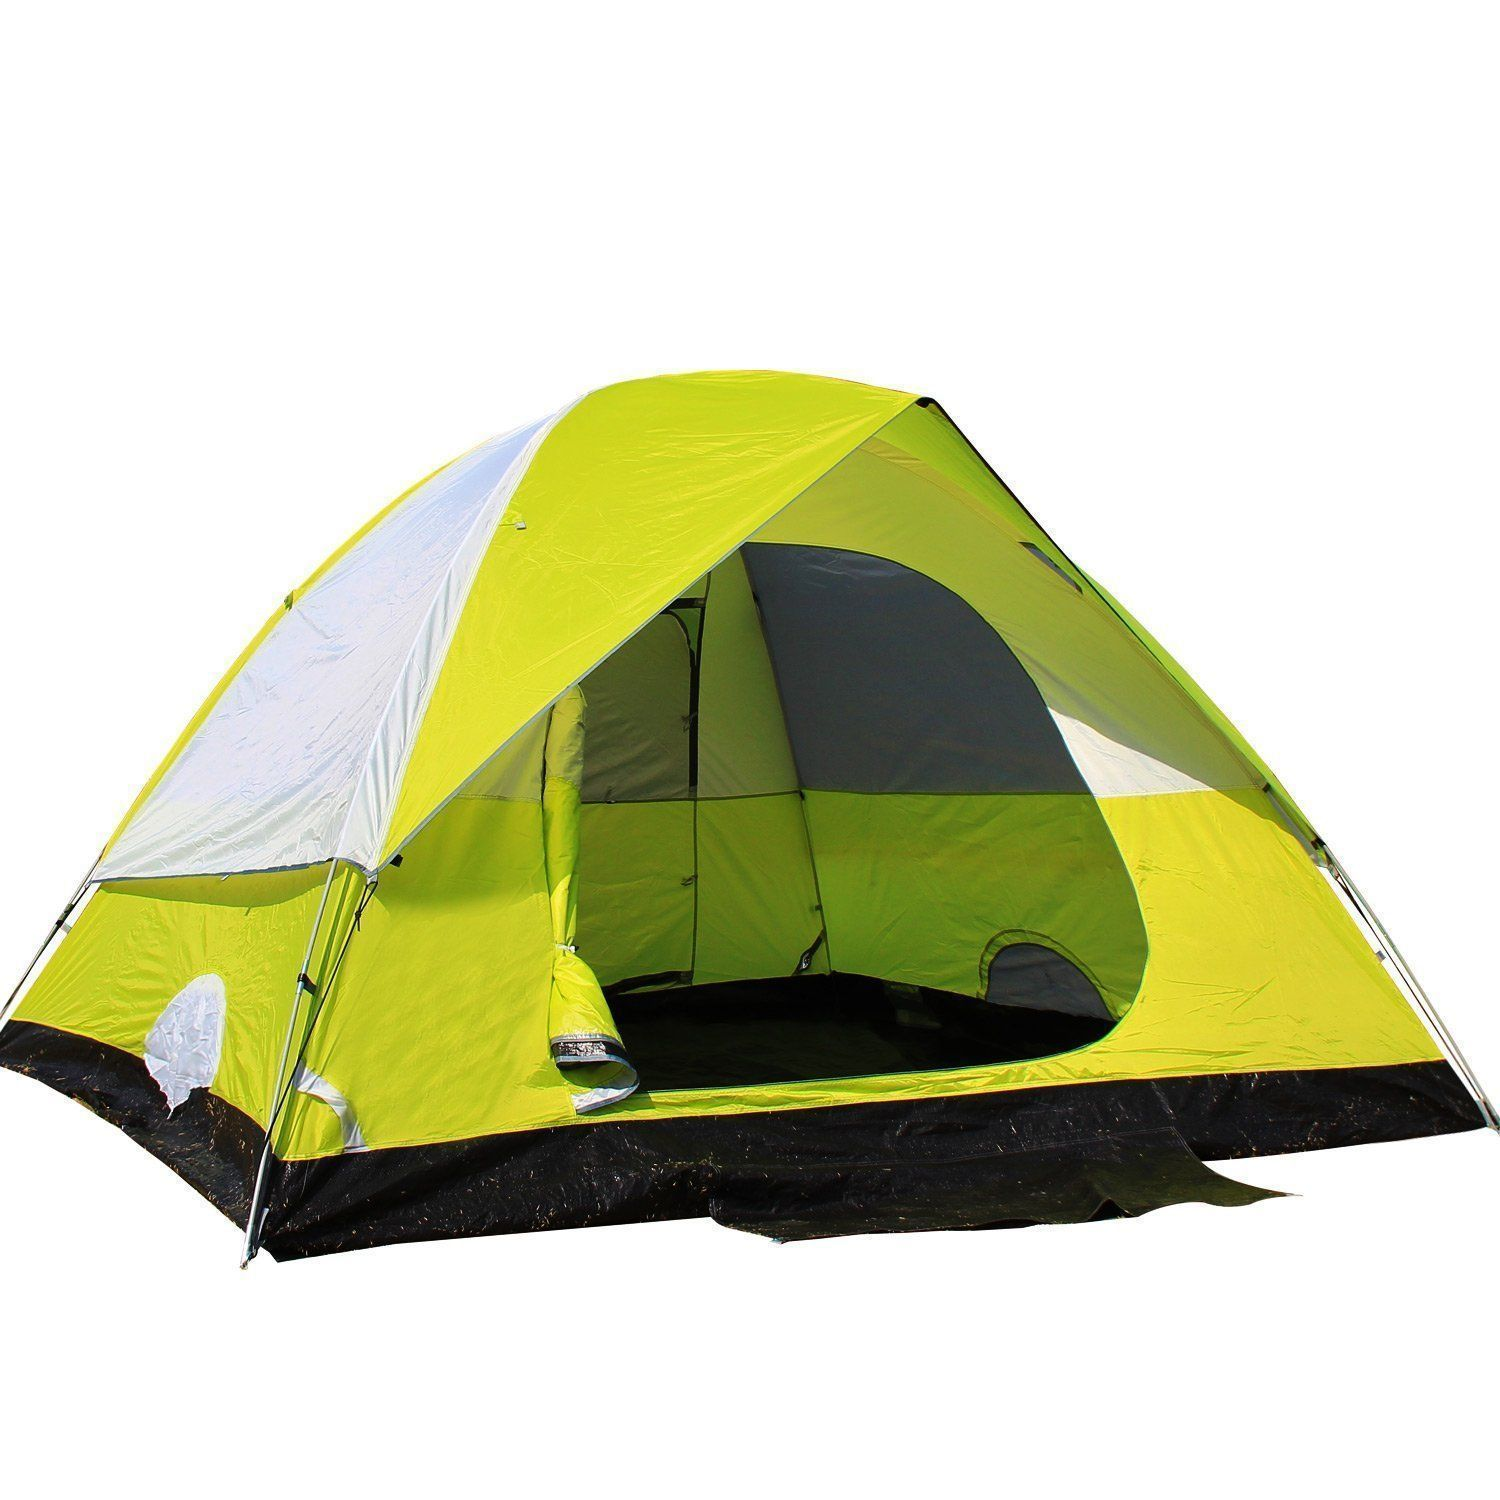 tent pop up tent tents for sale c&ing tents coleman tents c&ing gear c&ing equipment c&ing stove c&ing store canvas tents c&ing tent c&ing ...  sc 1 st  Pinterest : buy coleman tents - memphite.com